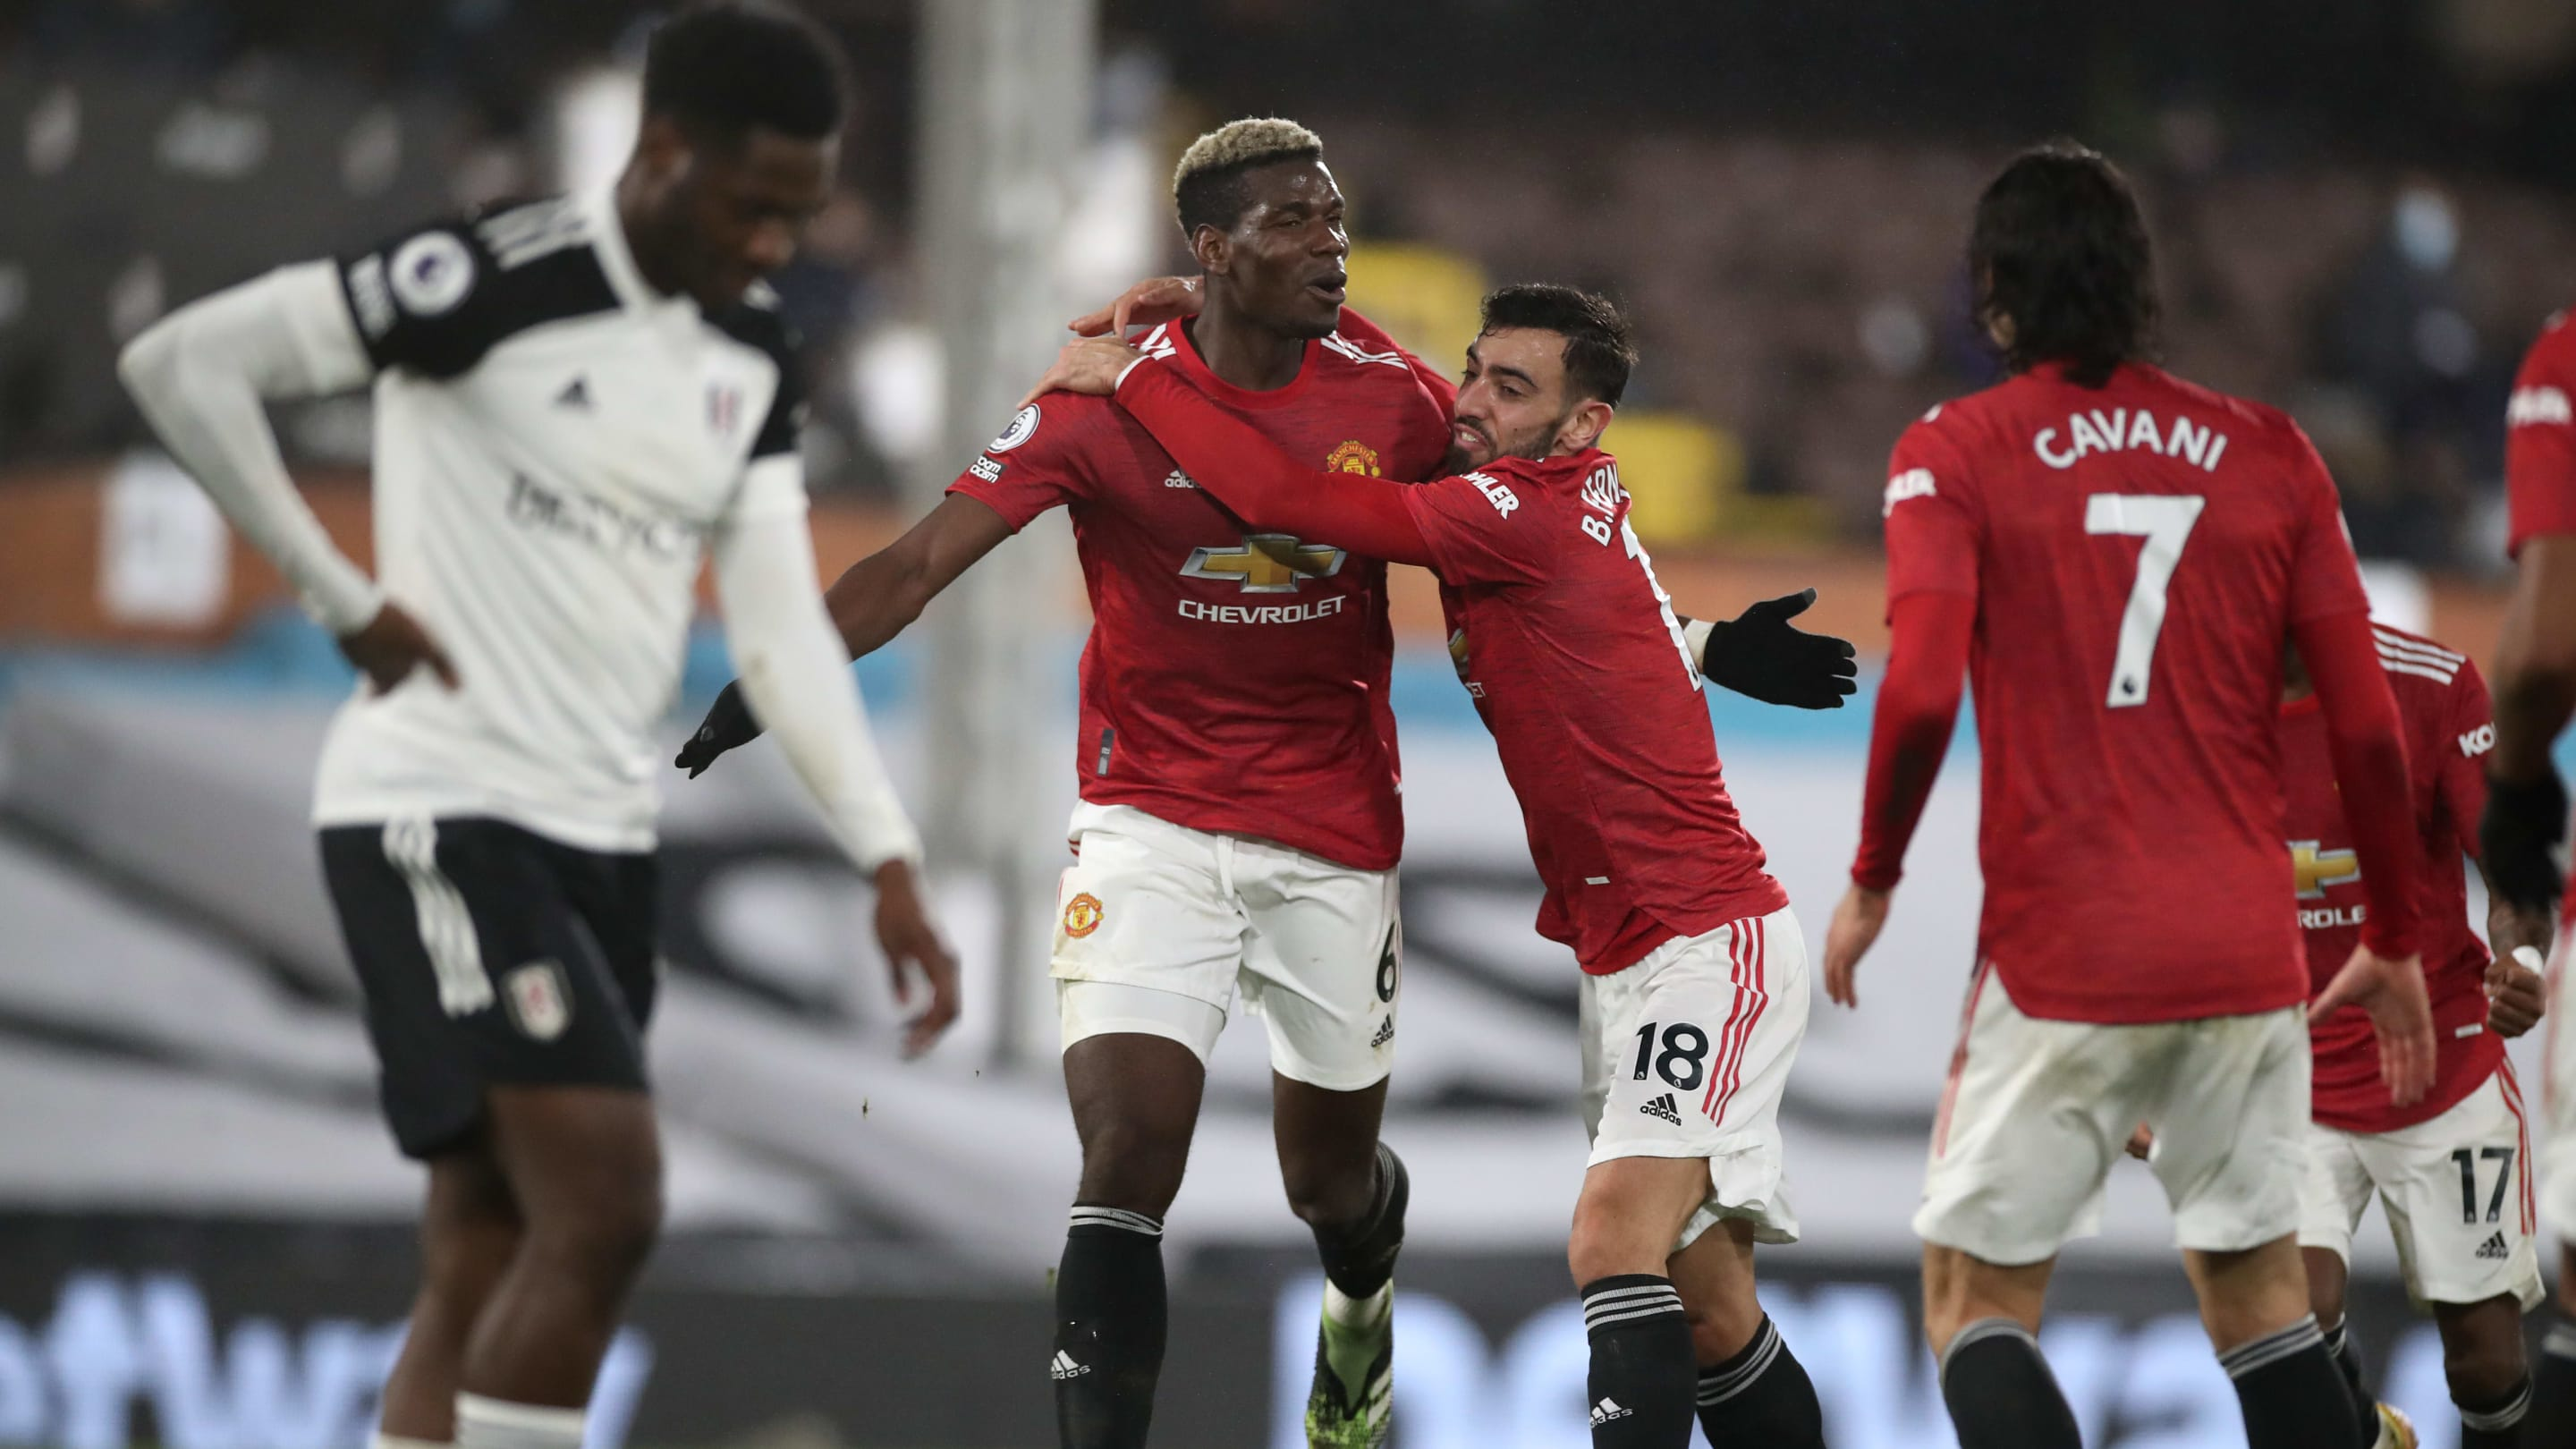 Fulham 1-2 Manchester United: Player ratings as Paul Pogba stunner sends Red Devils top thumbnail